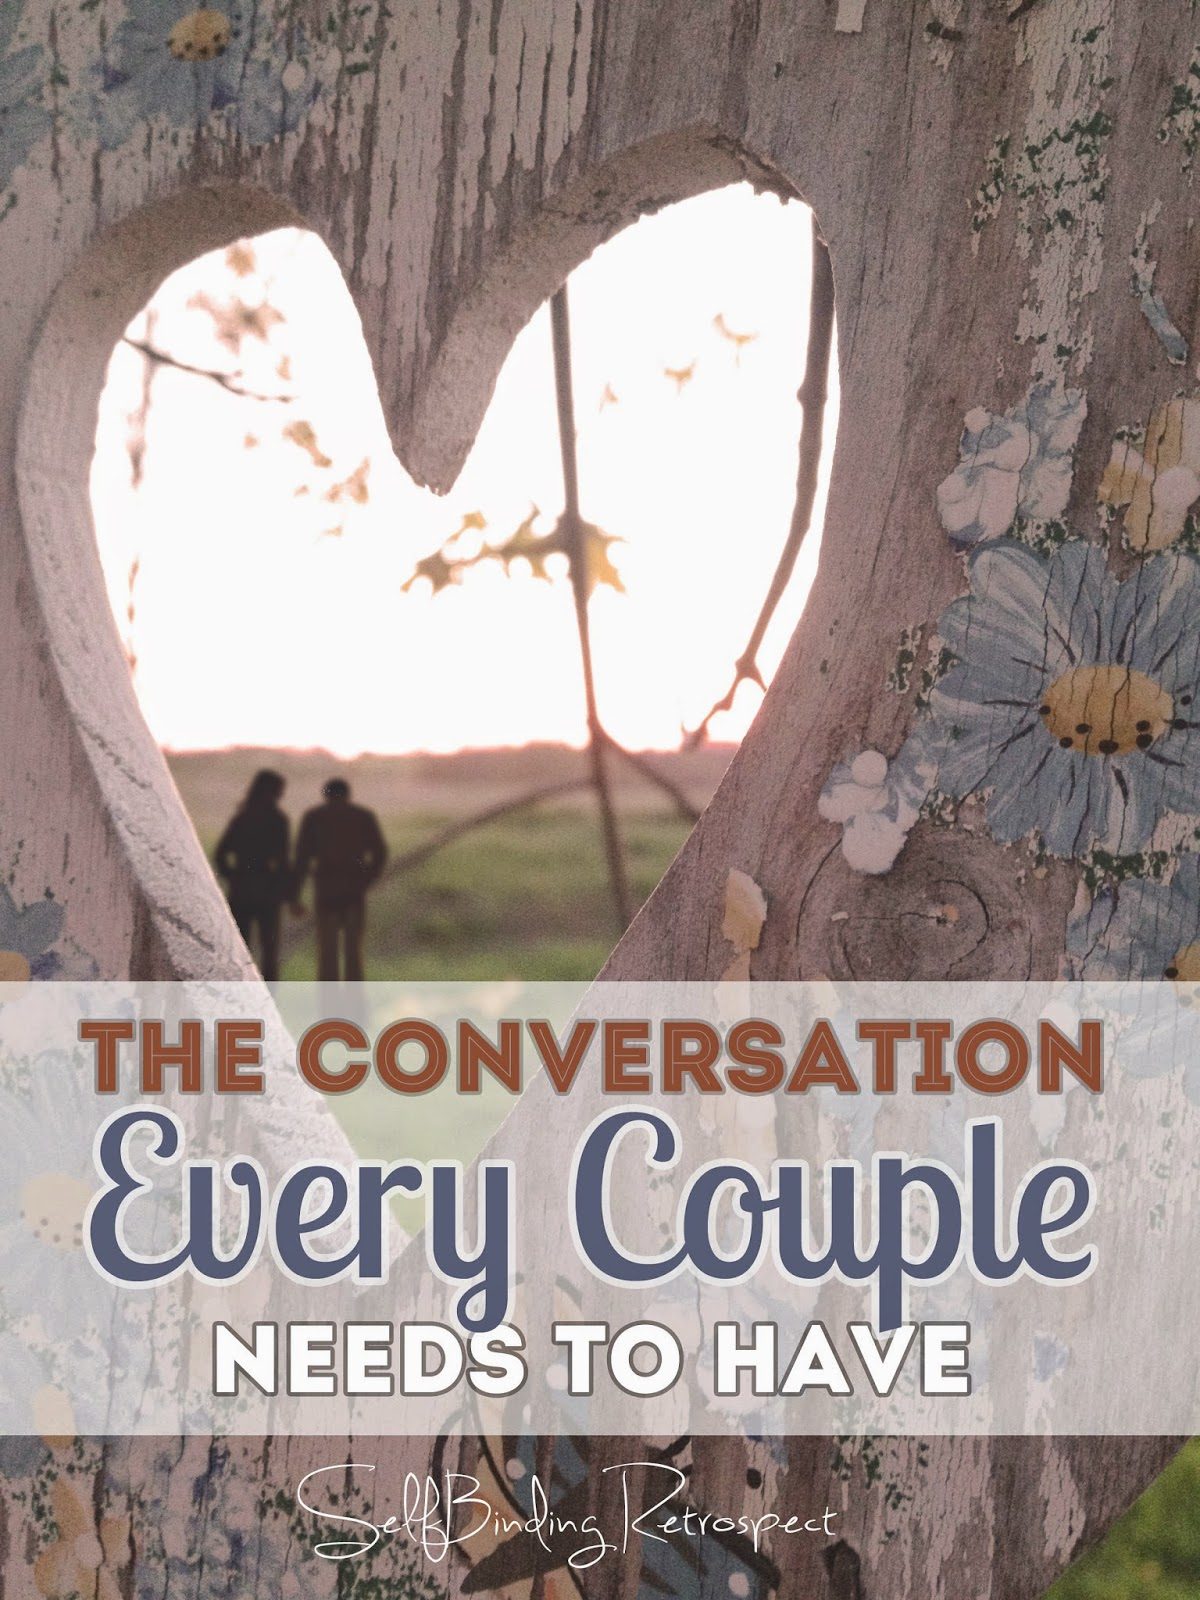 The Conversation Every Couple Needs To Have - SelfBinding Retrospect by Alanna Rusnak